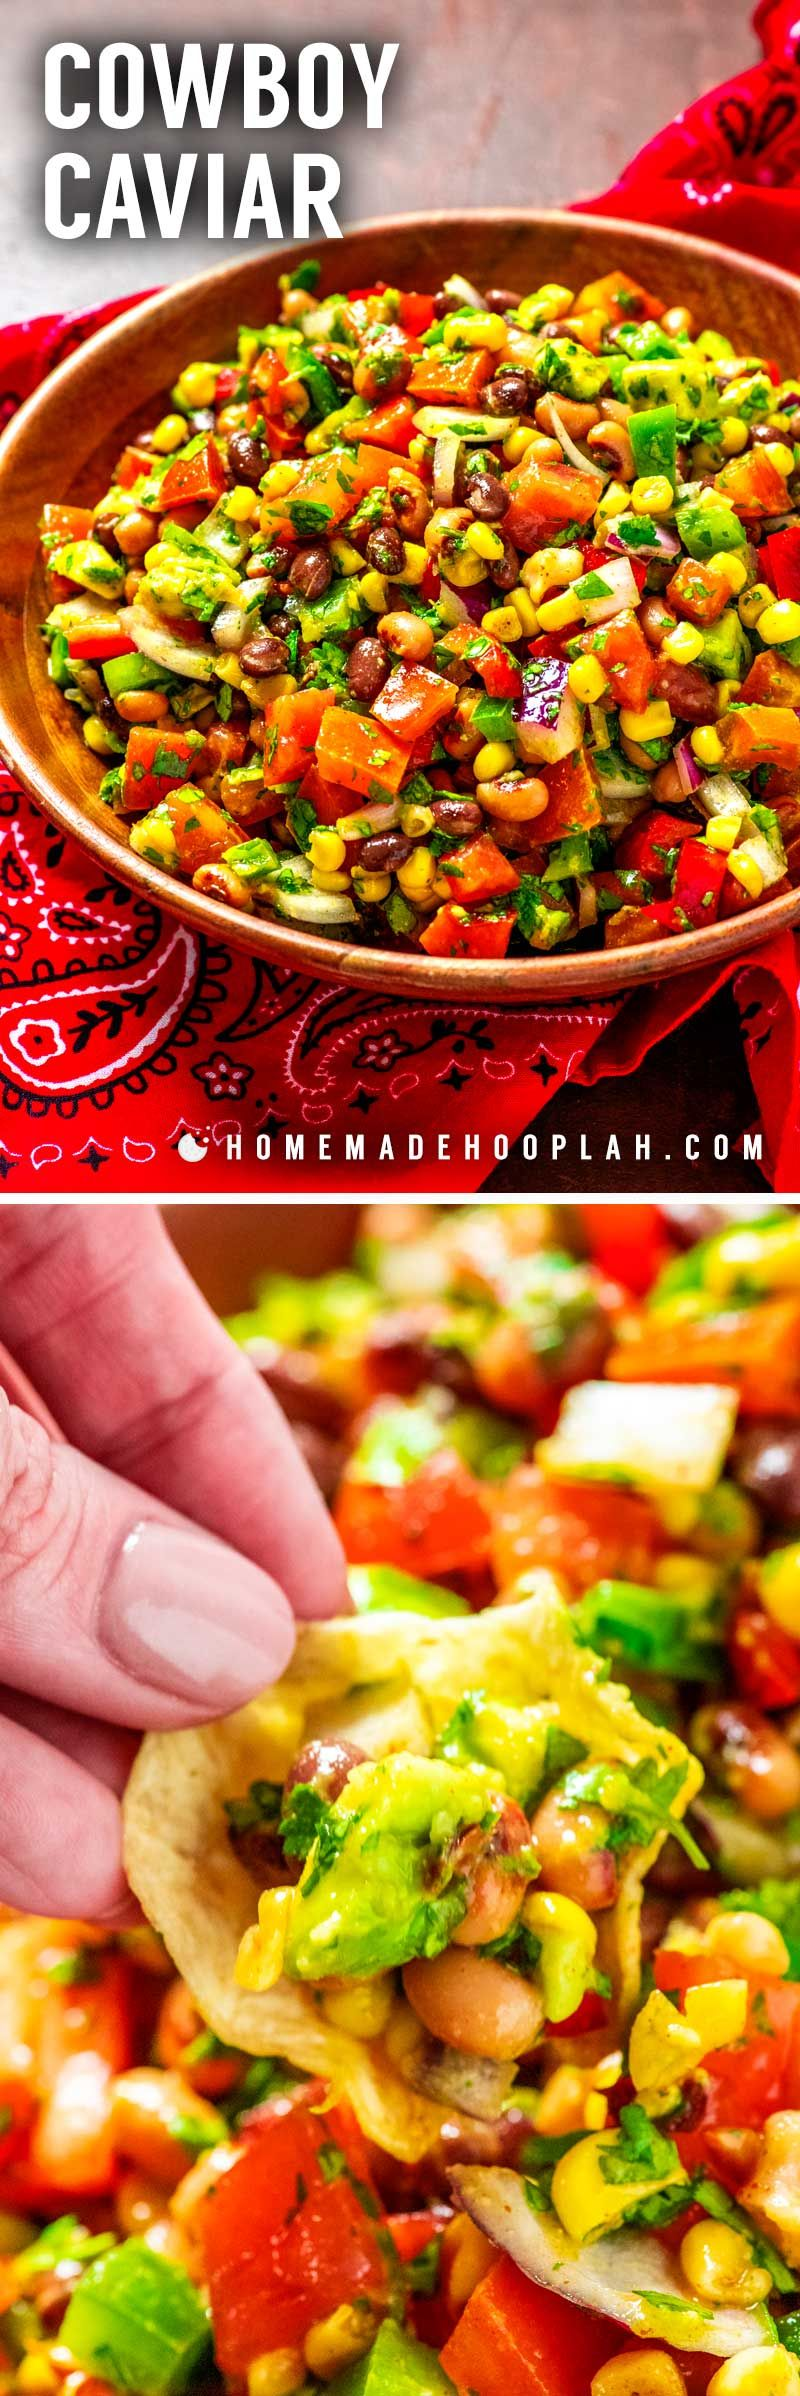 Cowboy Caviar! Loaded with fresh veggies and topped with a tasty vinaigrette, this colorful cowboy caviar (also called Texas caviar) is the summer salsa that packs some heat! | HomemadeHooplah.com #cowboycaviar